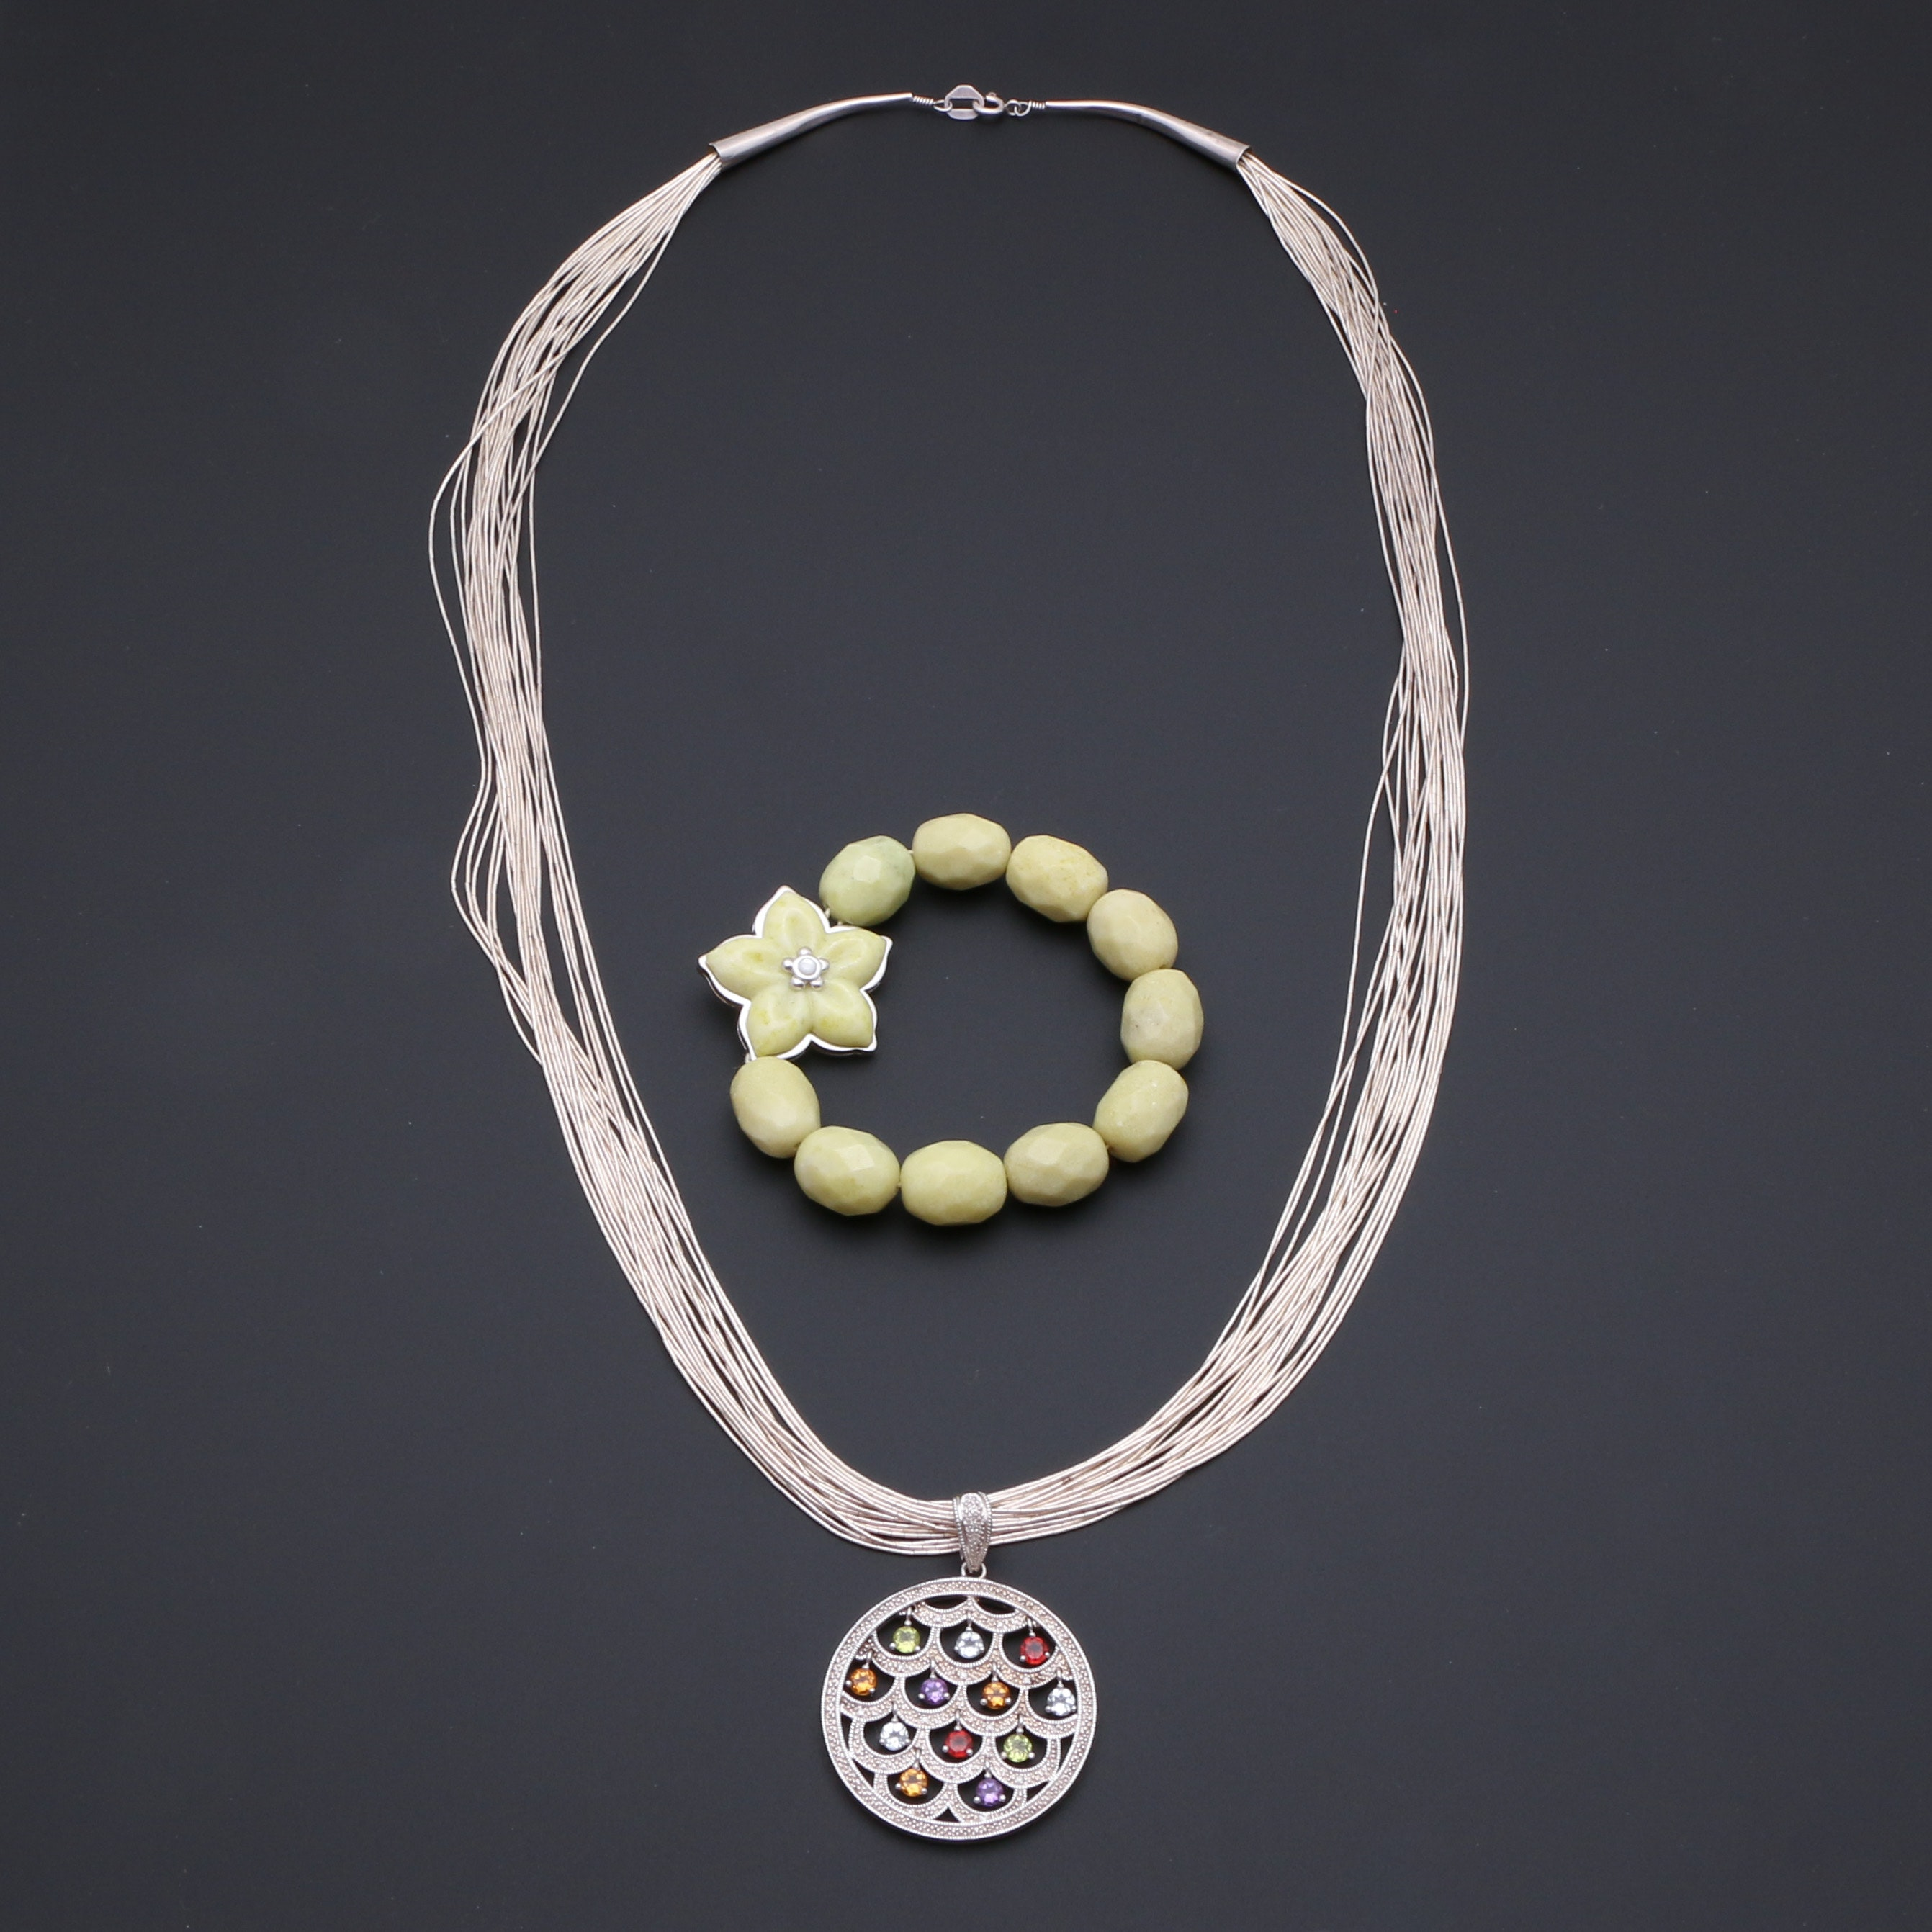 Sterling Silver Jewelry Featuring a Liquid Silver Necklace by Carolyn Pollack